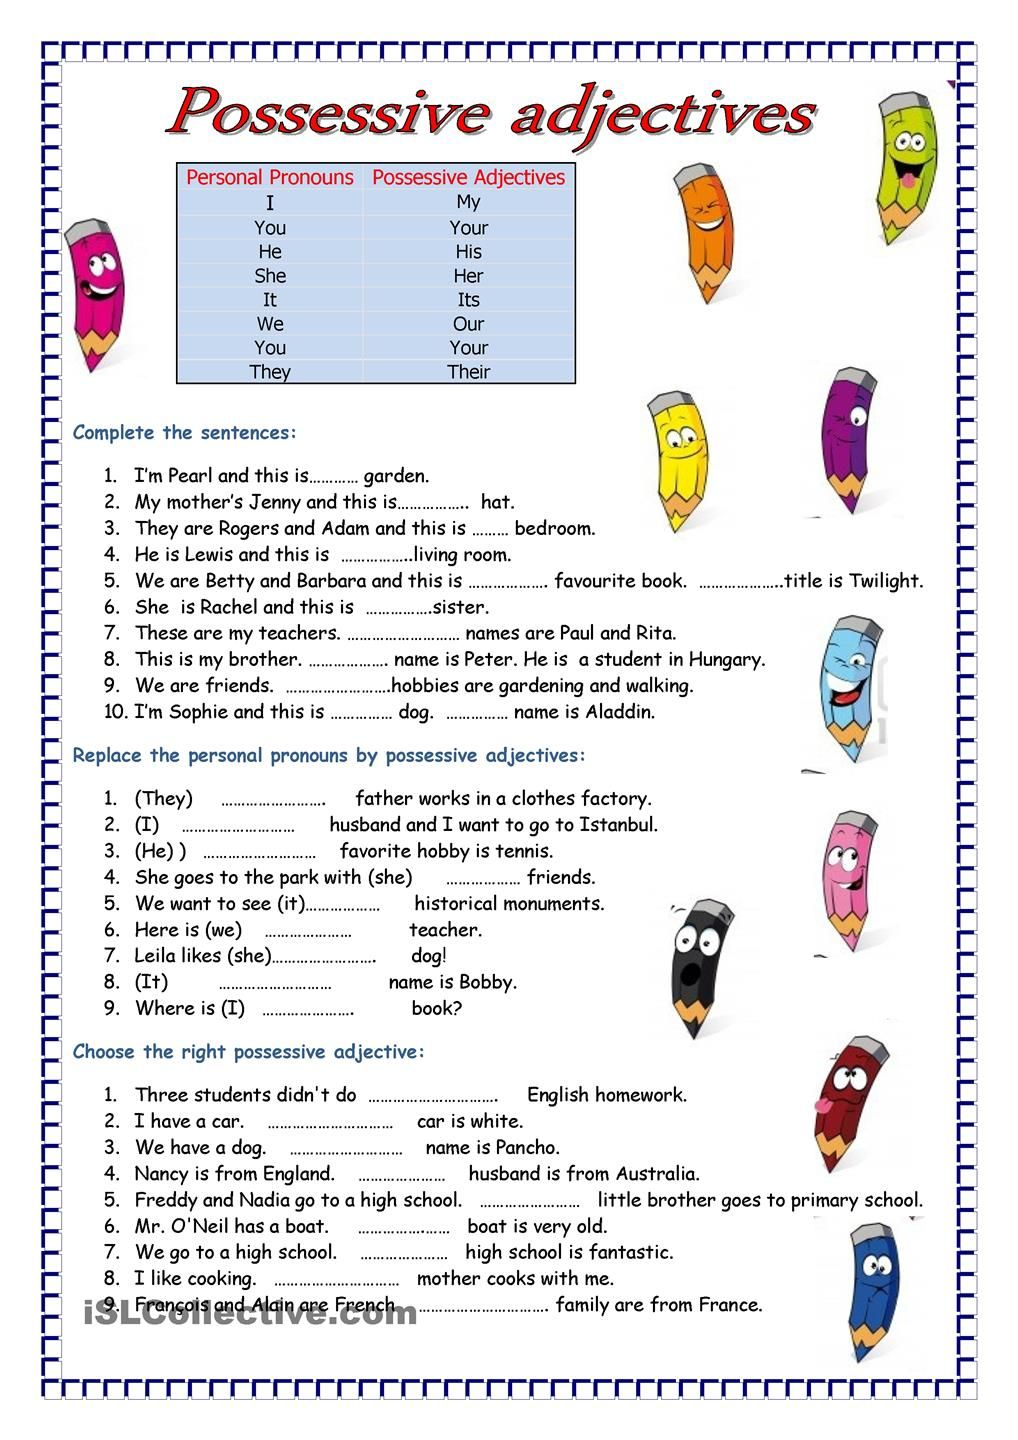 worksheet Esl Worksheets For Beginners adjectives free esl worksheets english language pinterest worksheets